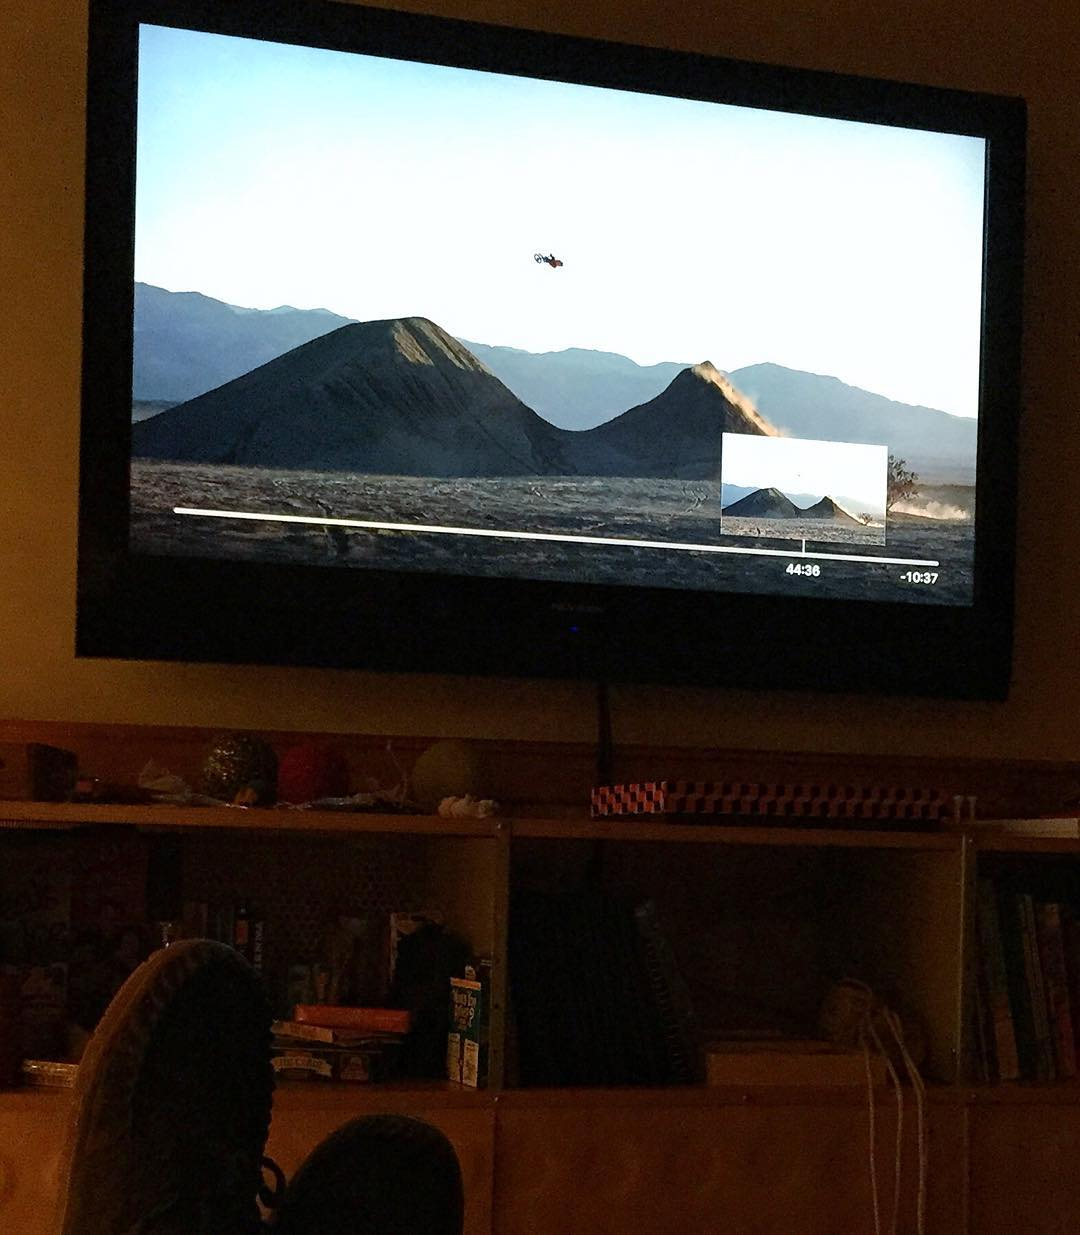 Yo, @rendawgfmx! I finally bought #Moto7 on iTunes and watched it with my kids last night. We all thought your part was the best. Especially this REALLY dope double jump. Congrats on a ridiculous video part! #Rennerrules #motofamily #braaap